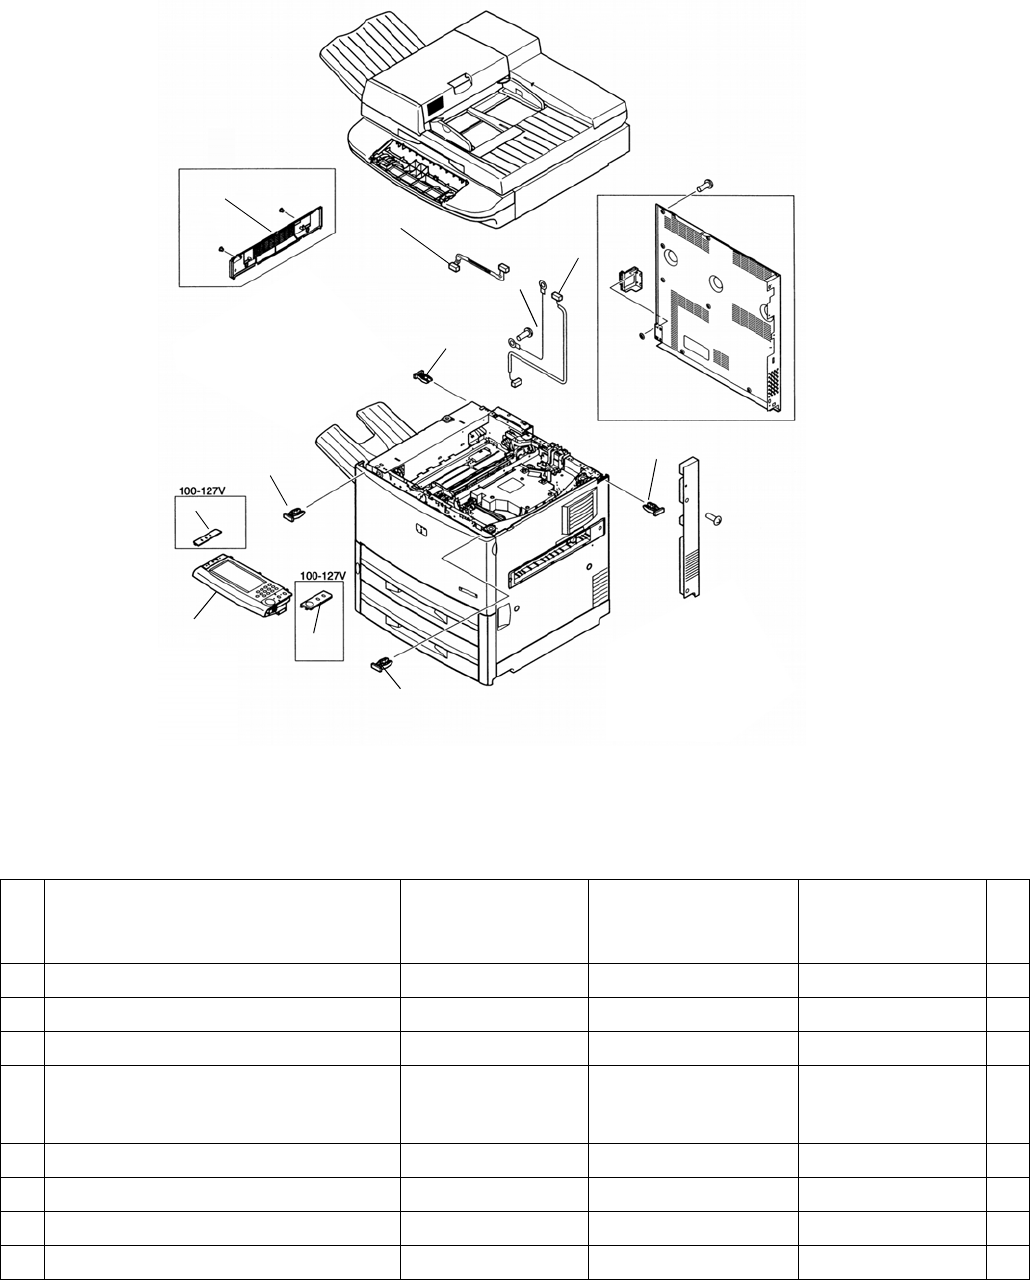 328 Chapter 8 Parts and diagrams ENWW. MFP system assembly